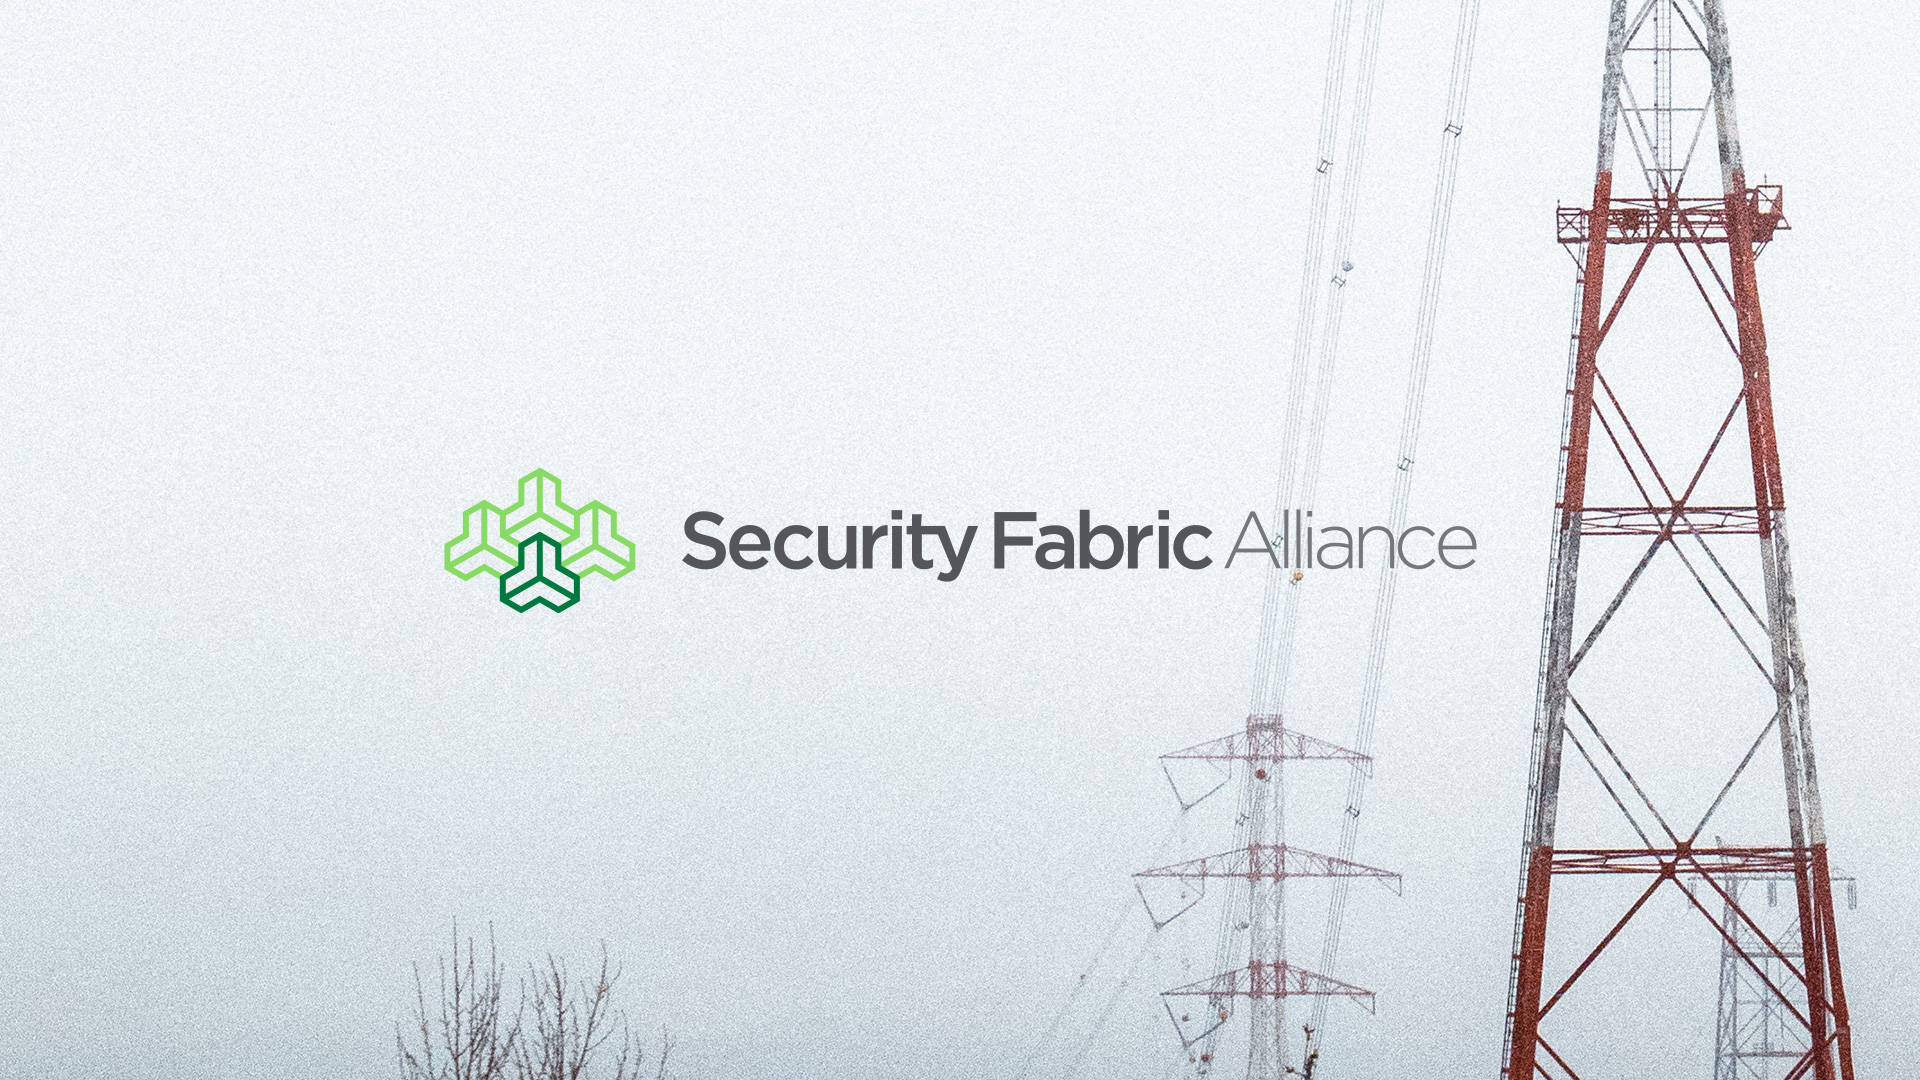 SecurityFabricAlliance_Logo.jpg